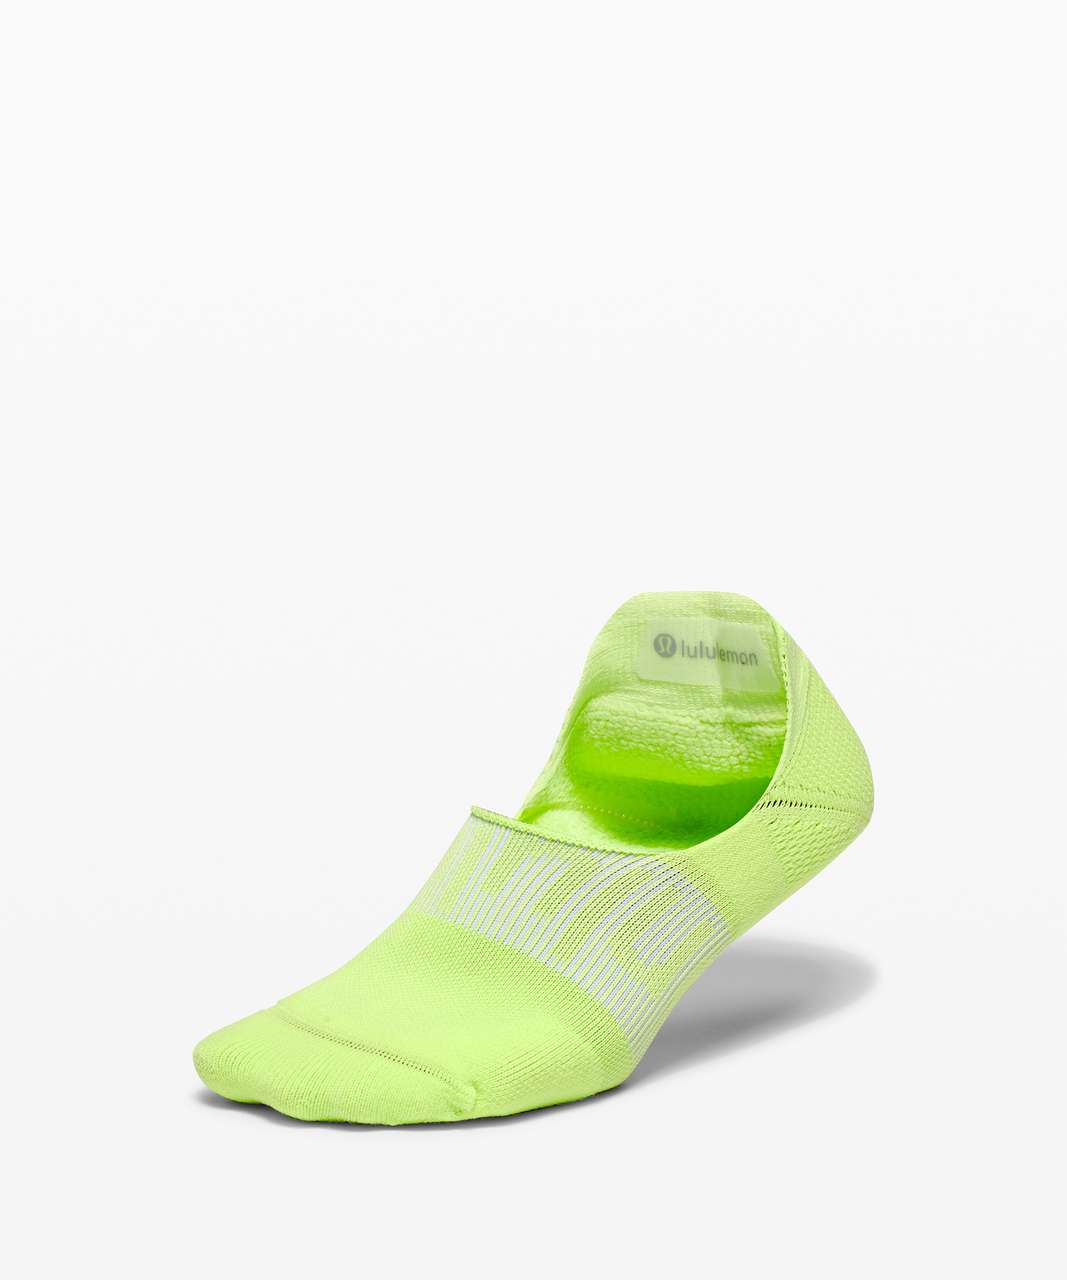 Lululemon Power Stride No-Show Sock with Active Grip - Neo Mint